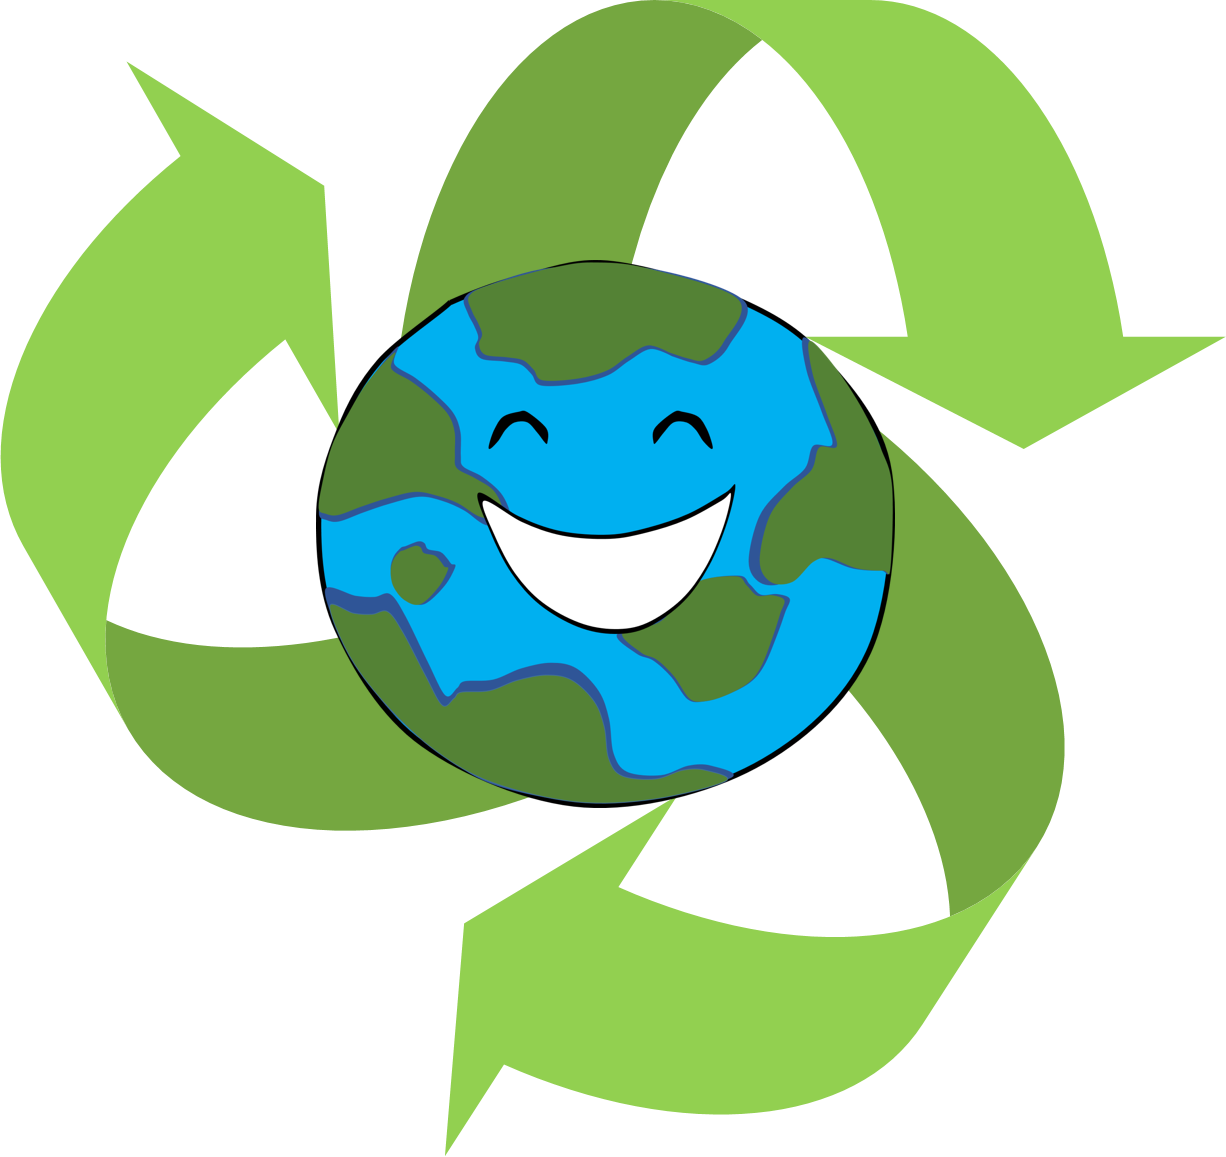 Transparent earth clipart - Recycle Clipart - Project On Earth Day